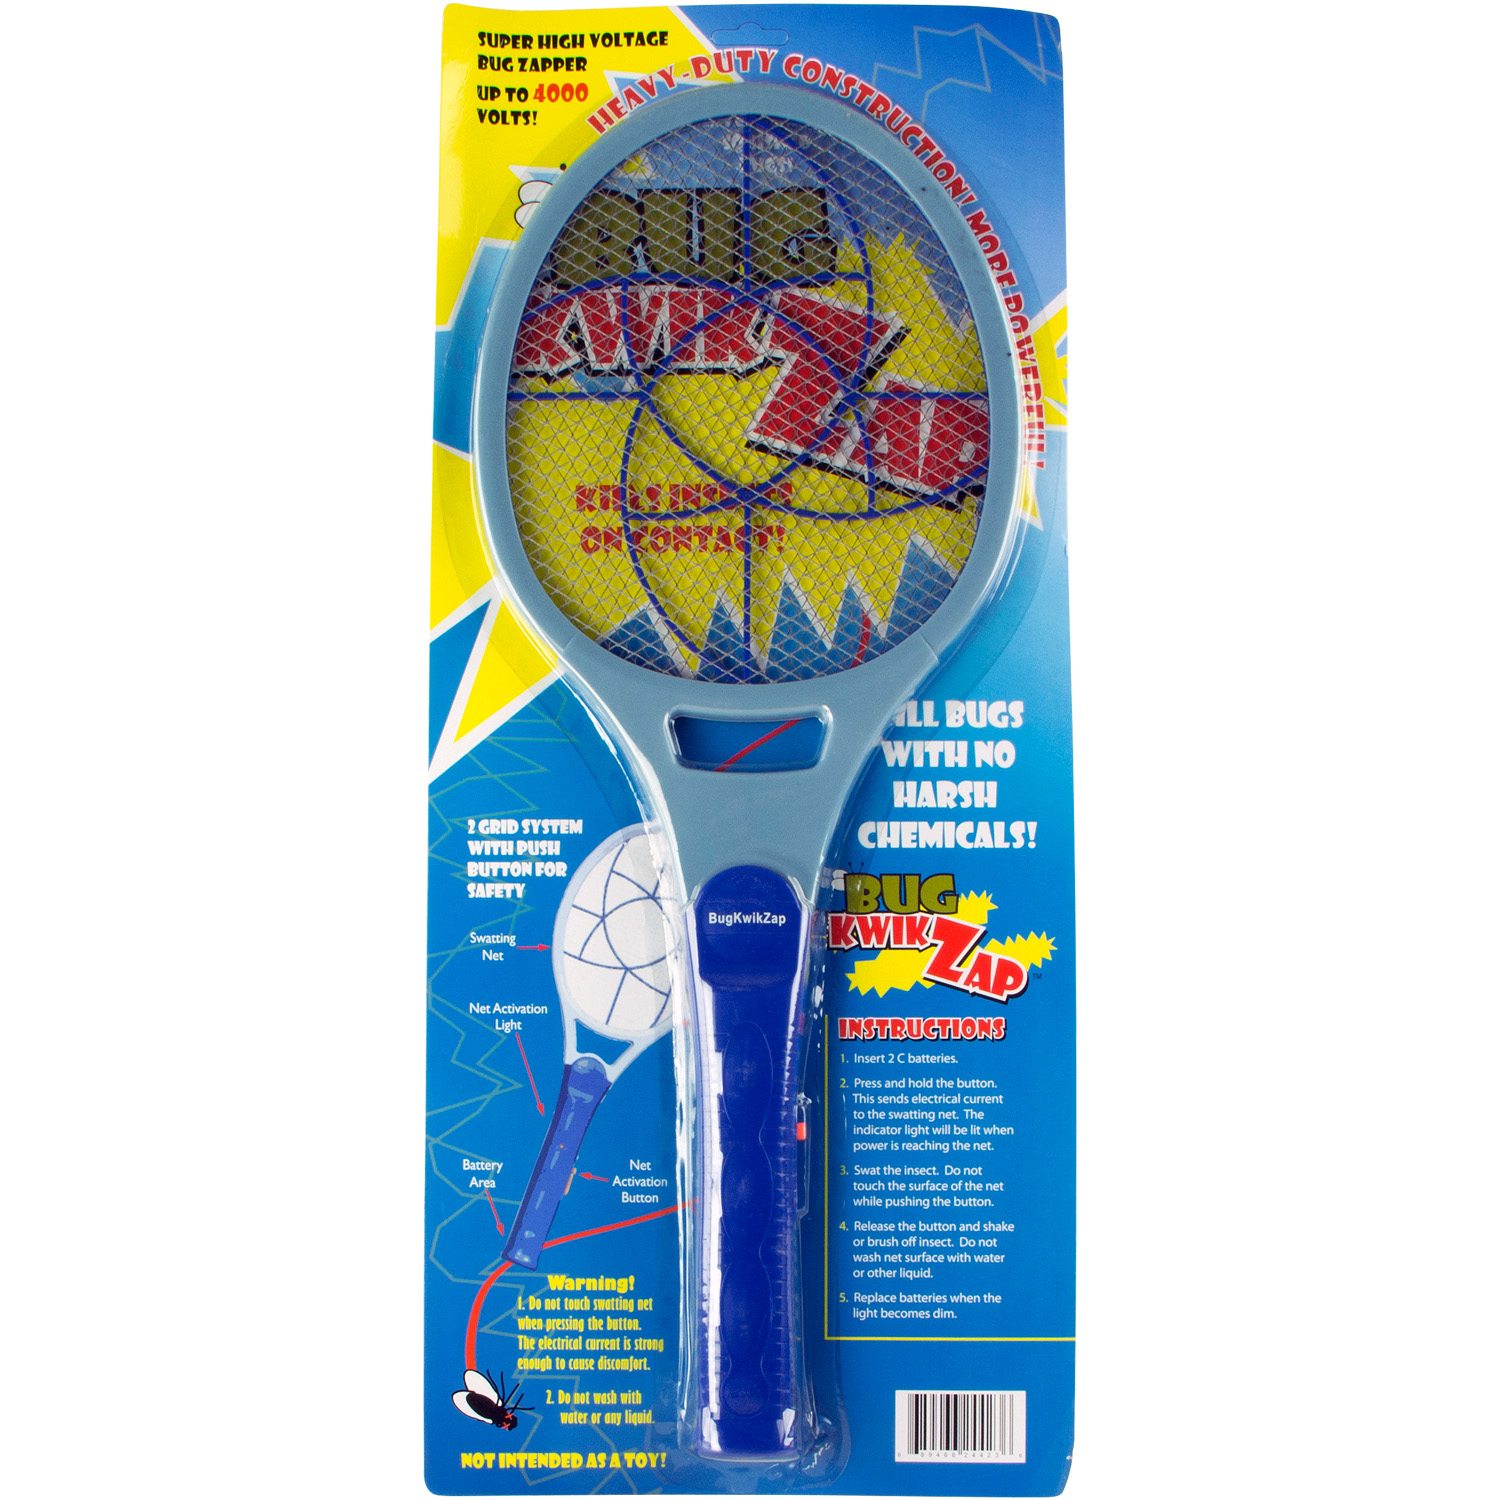 BugKwikZap - Pinwheel Most Powerful Bug Zapper for Large Bugs (2C Batteries, 4000V)